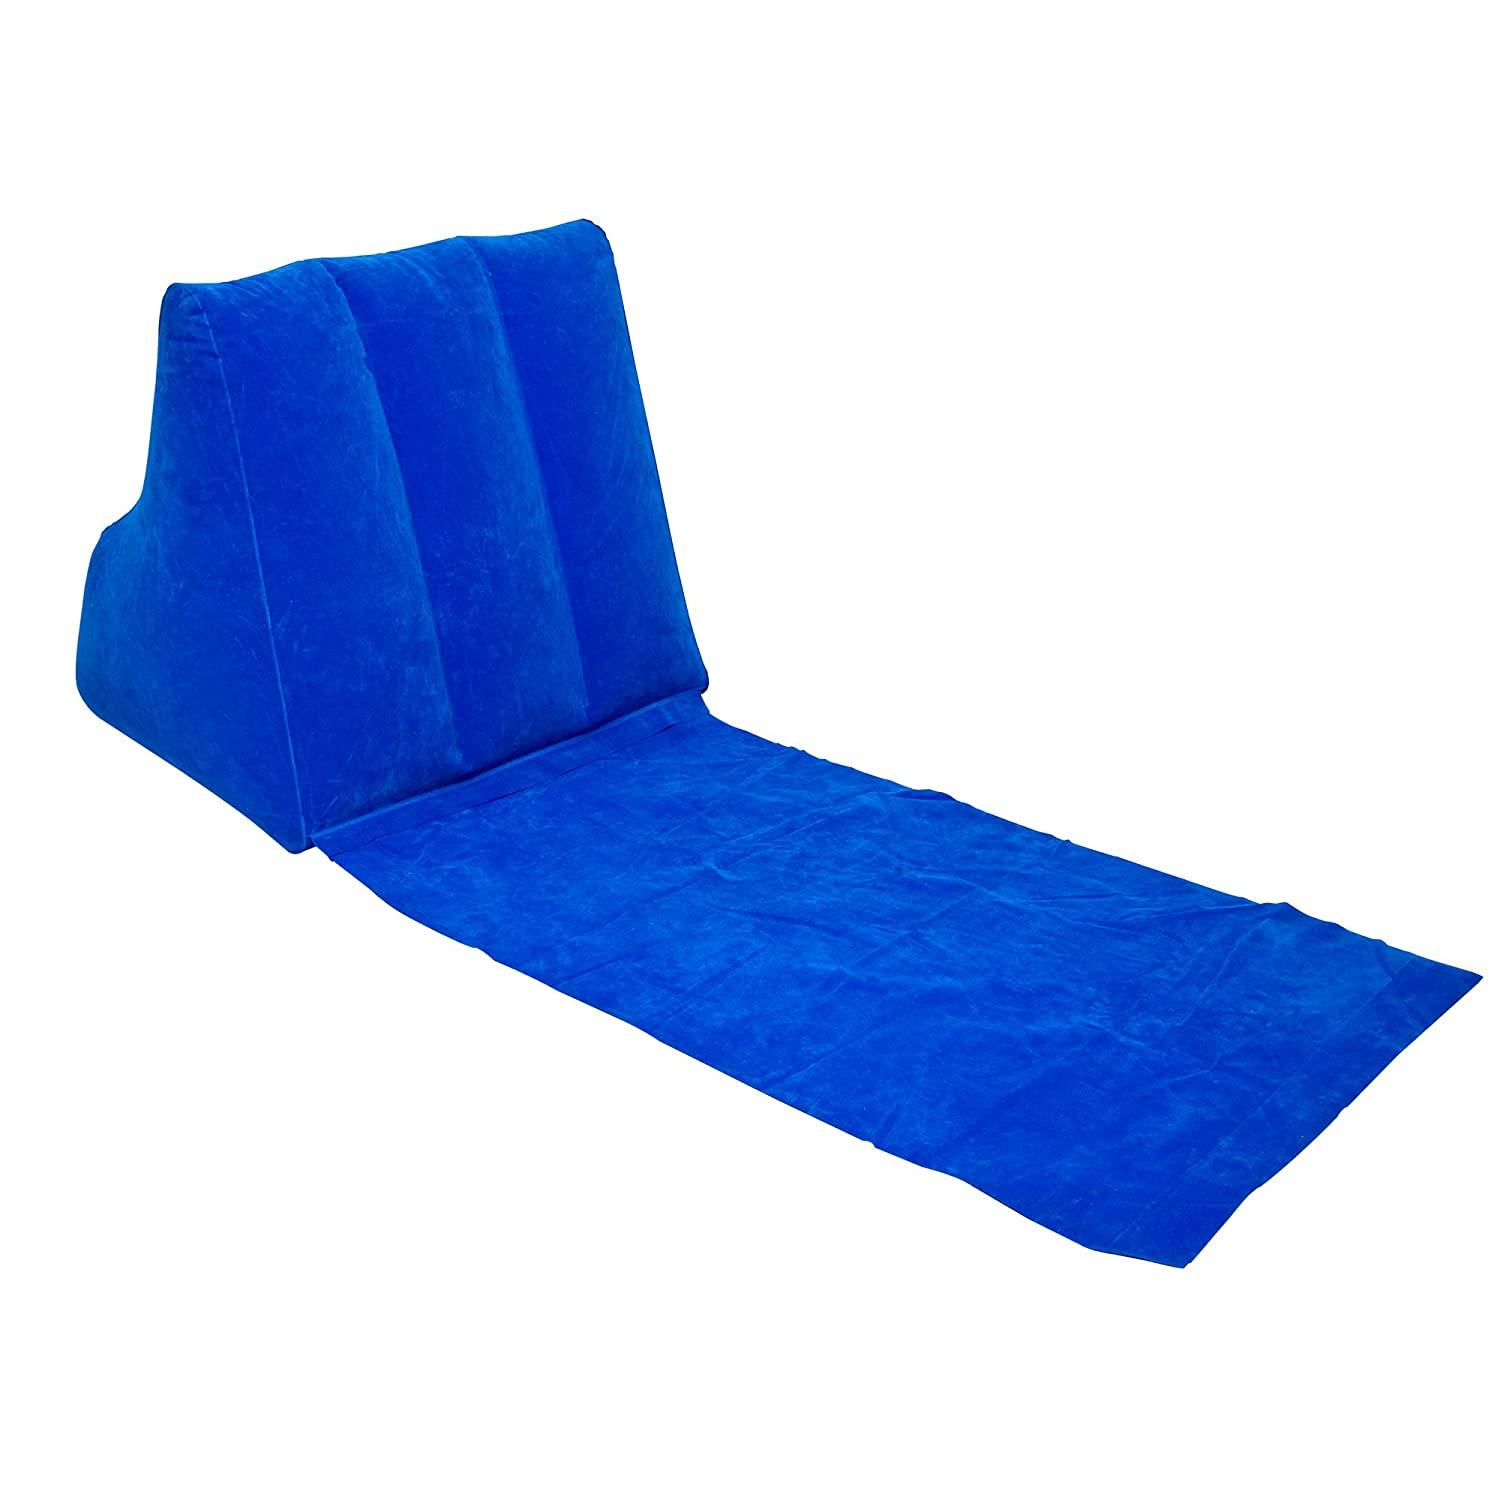 salon chairs ebay ez chair covers wicked wedge inflatable beach festival camping lounger back pillow cushion |